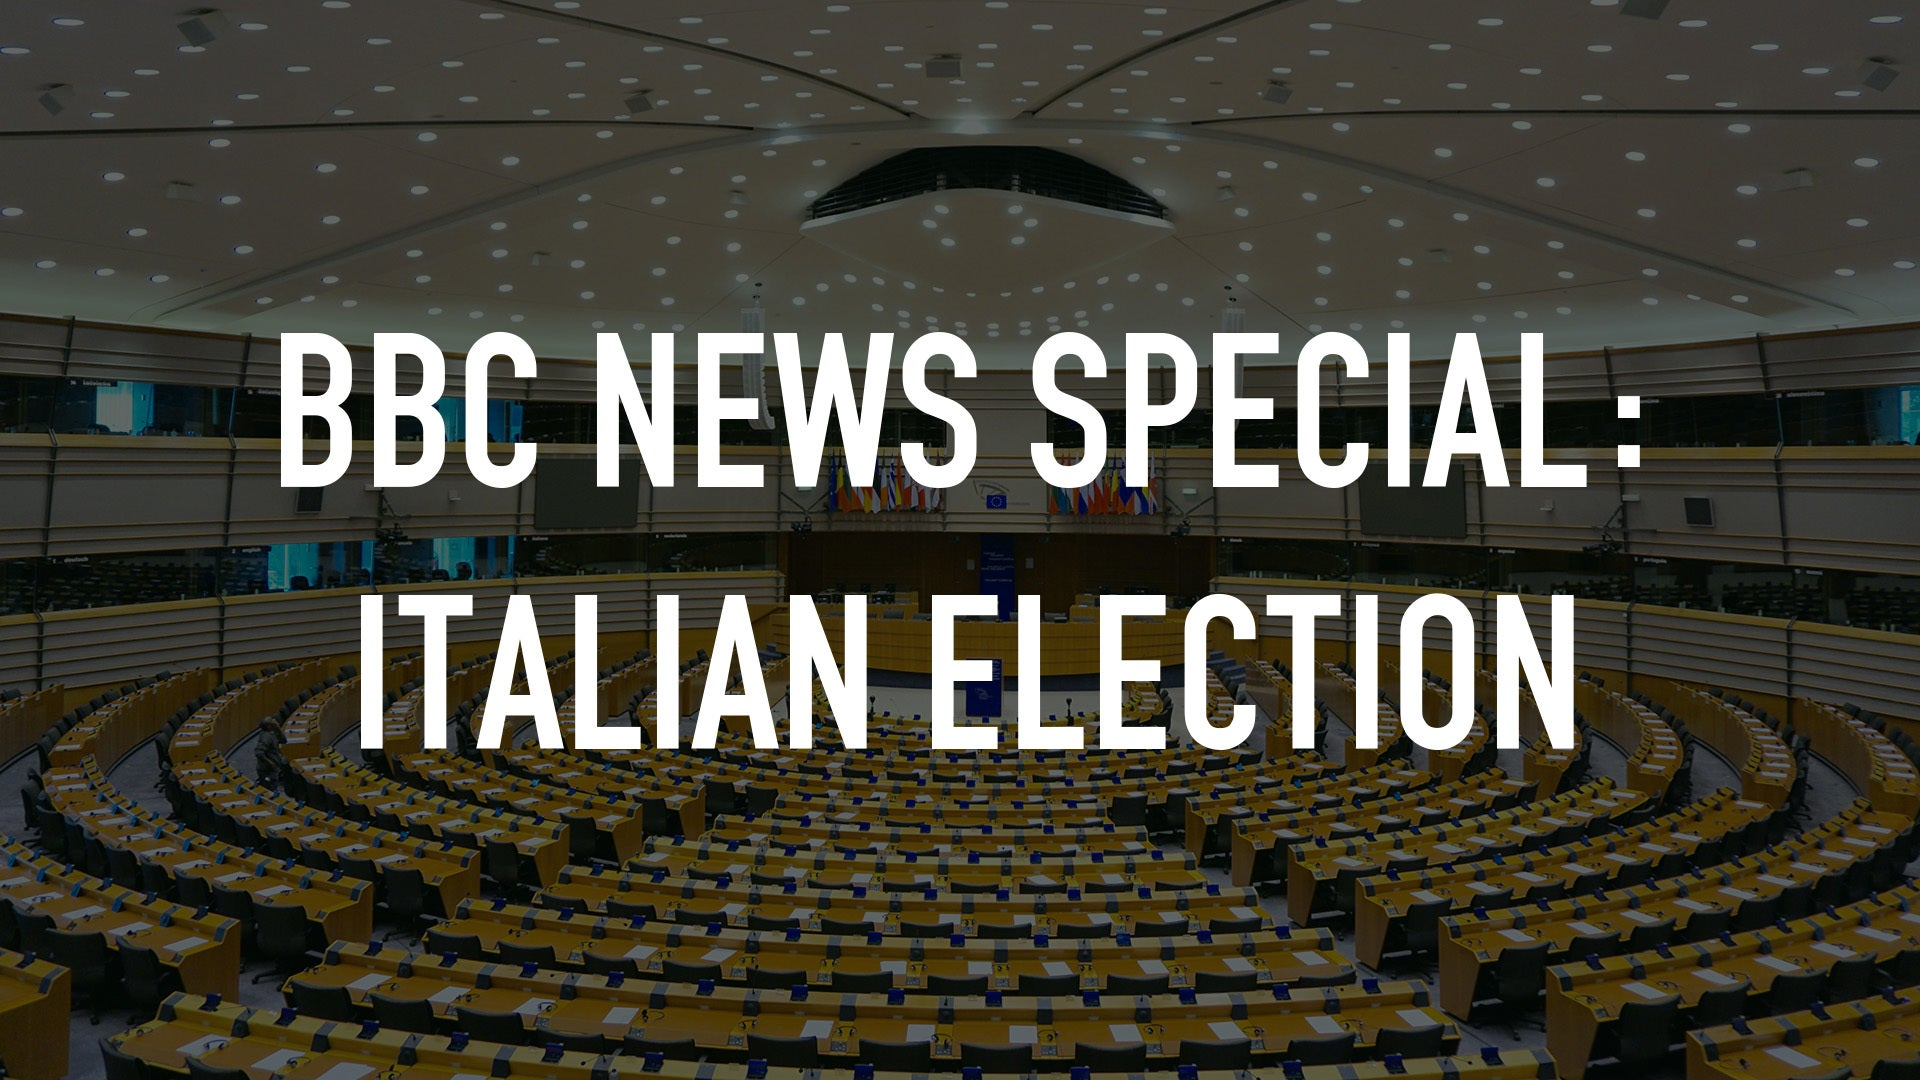 BBC News Special: Italian Election